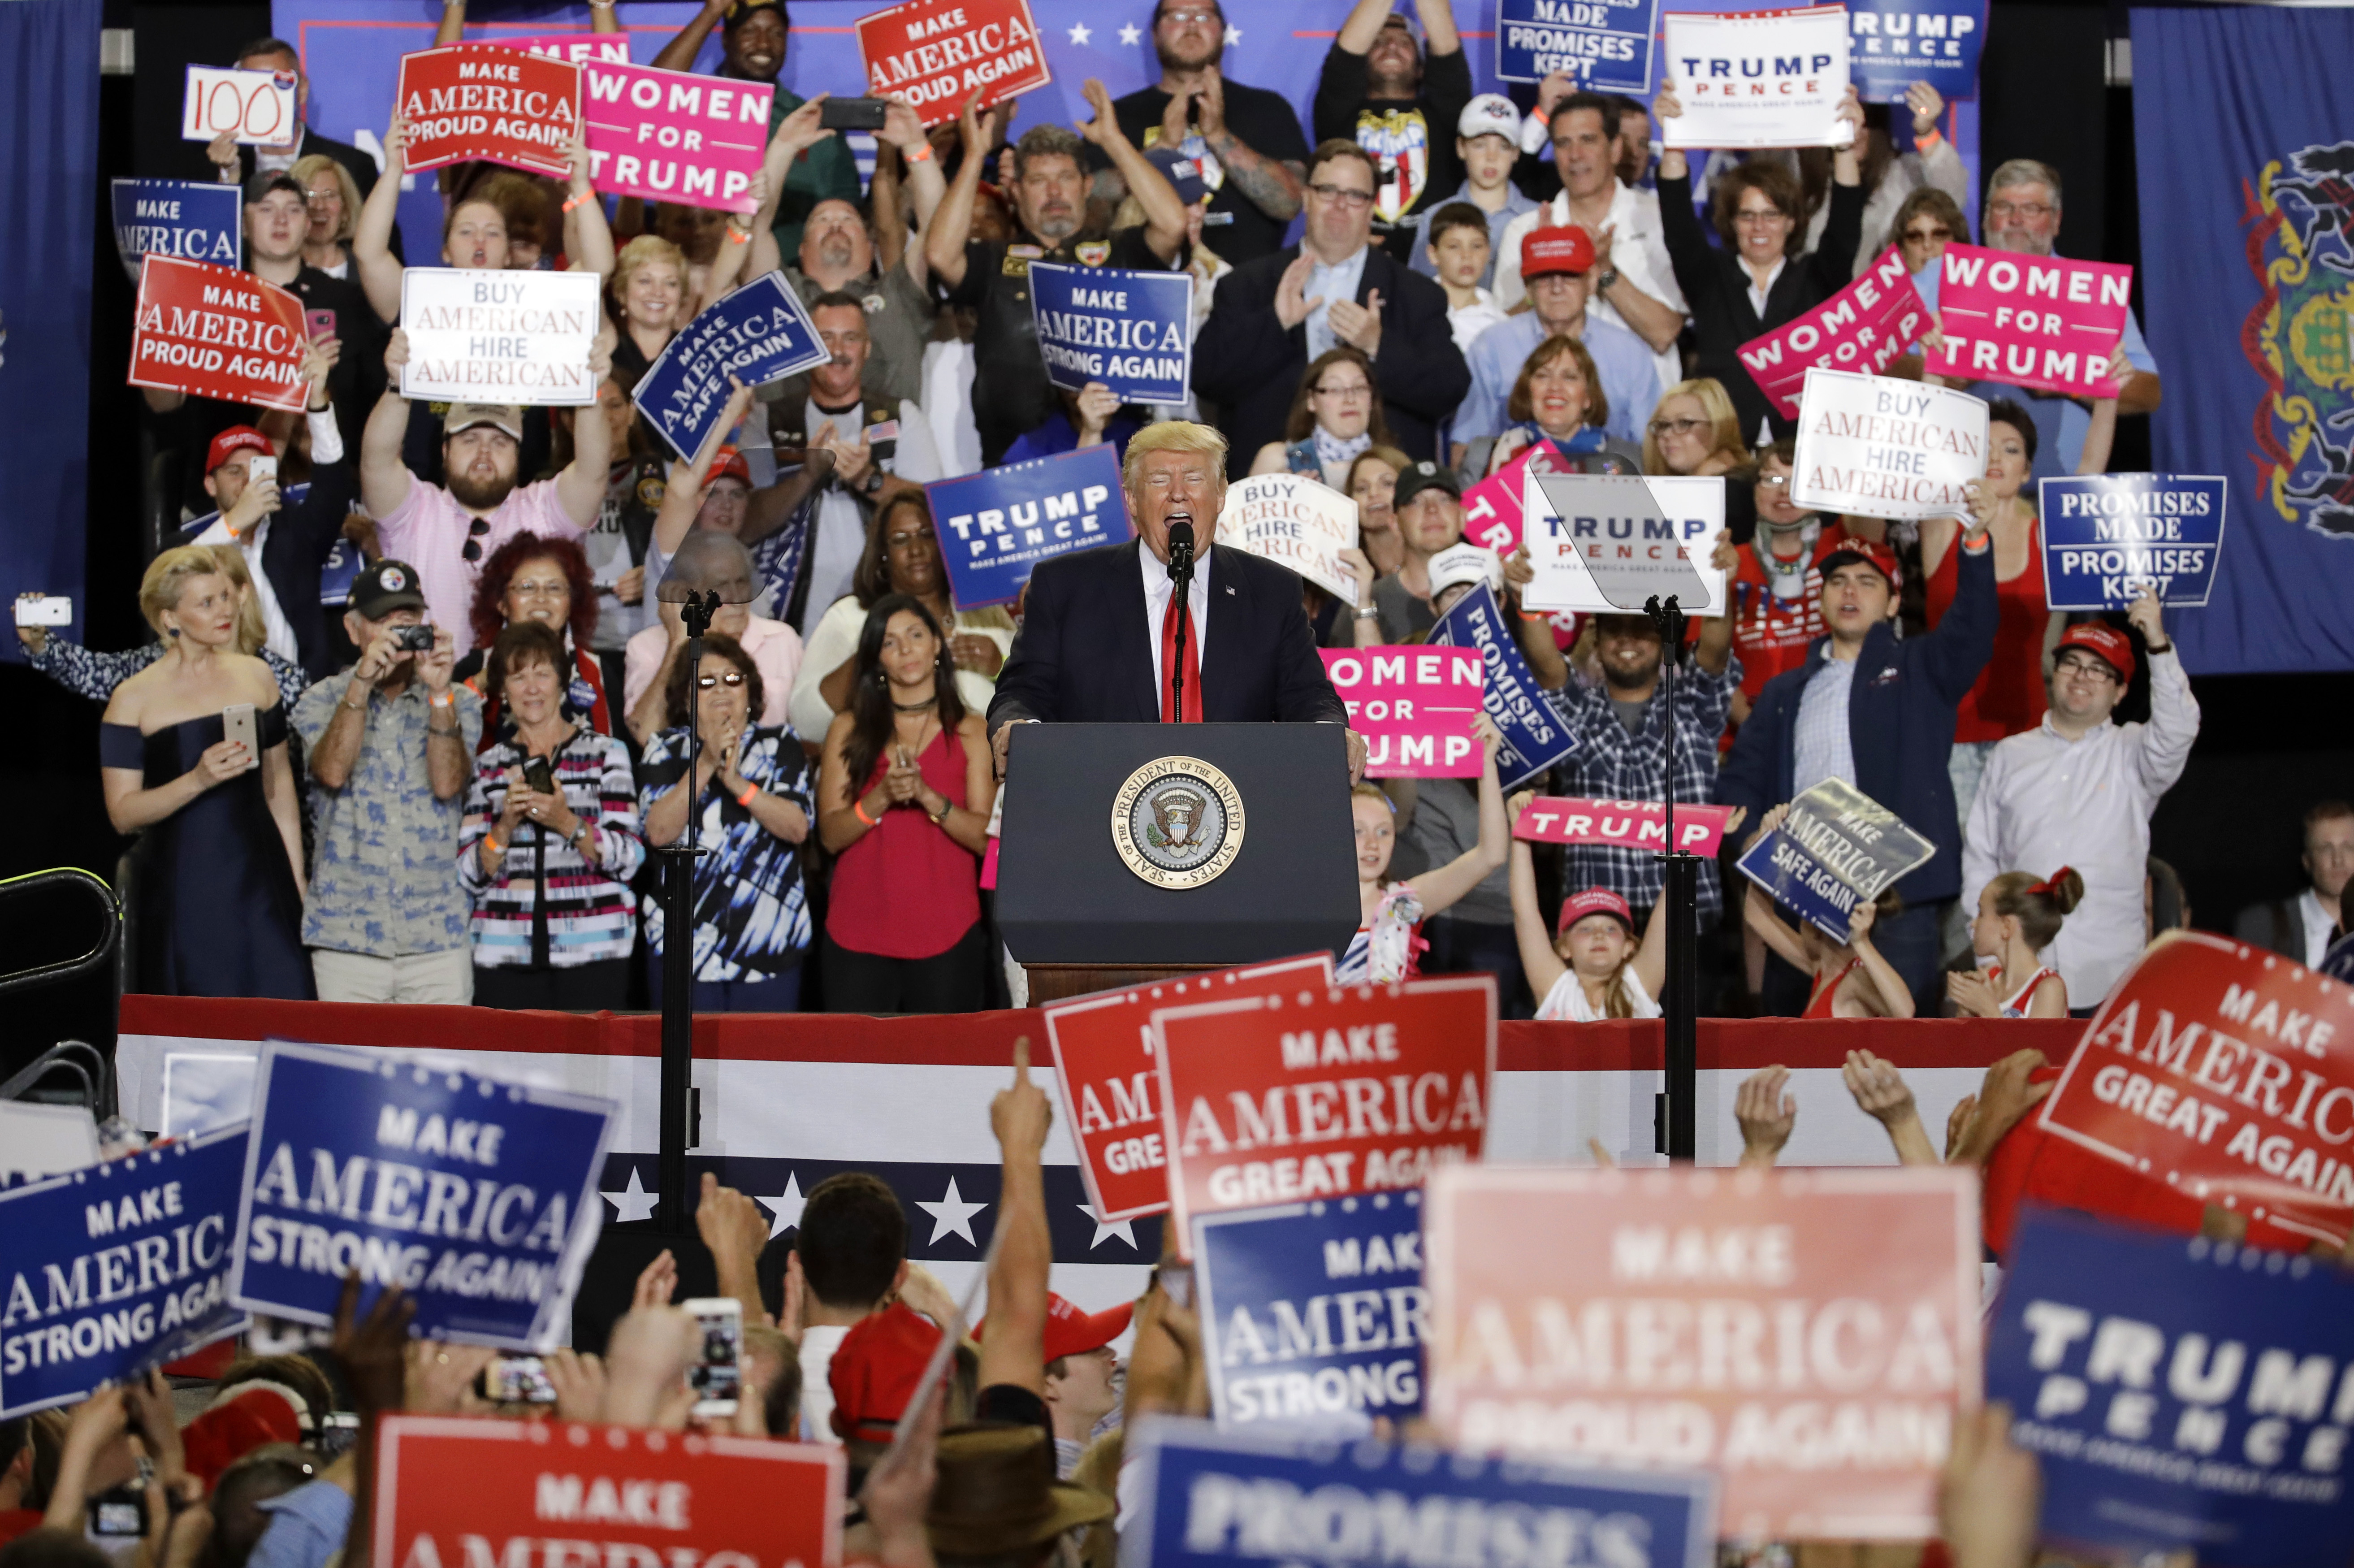 President Donald Trump speaks at a rally in Harrisburg, Pa., Saturday, April 29, 2017. (AP Photo/Patrick Semansky)